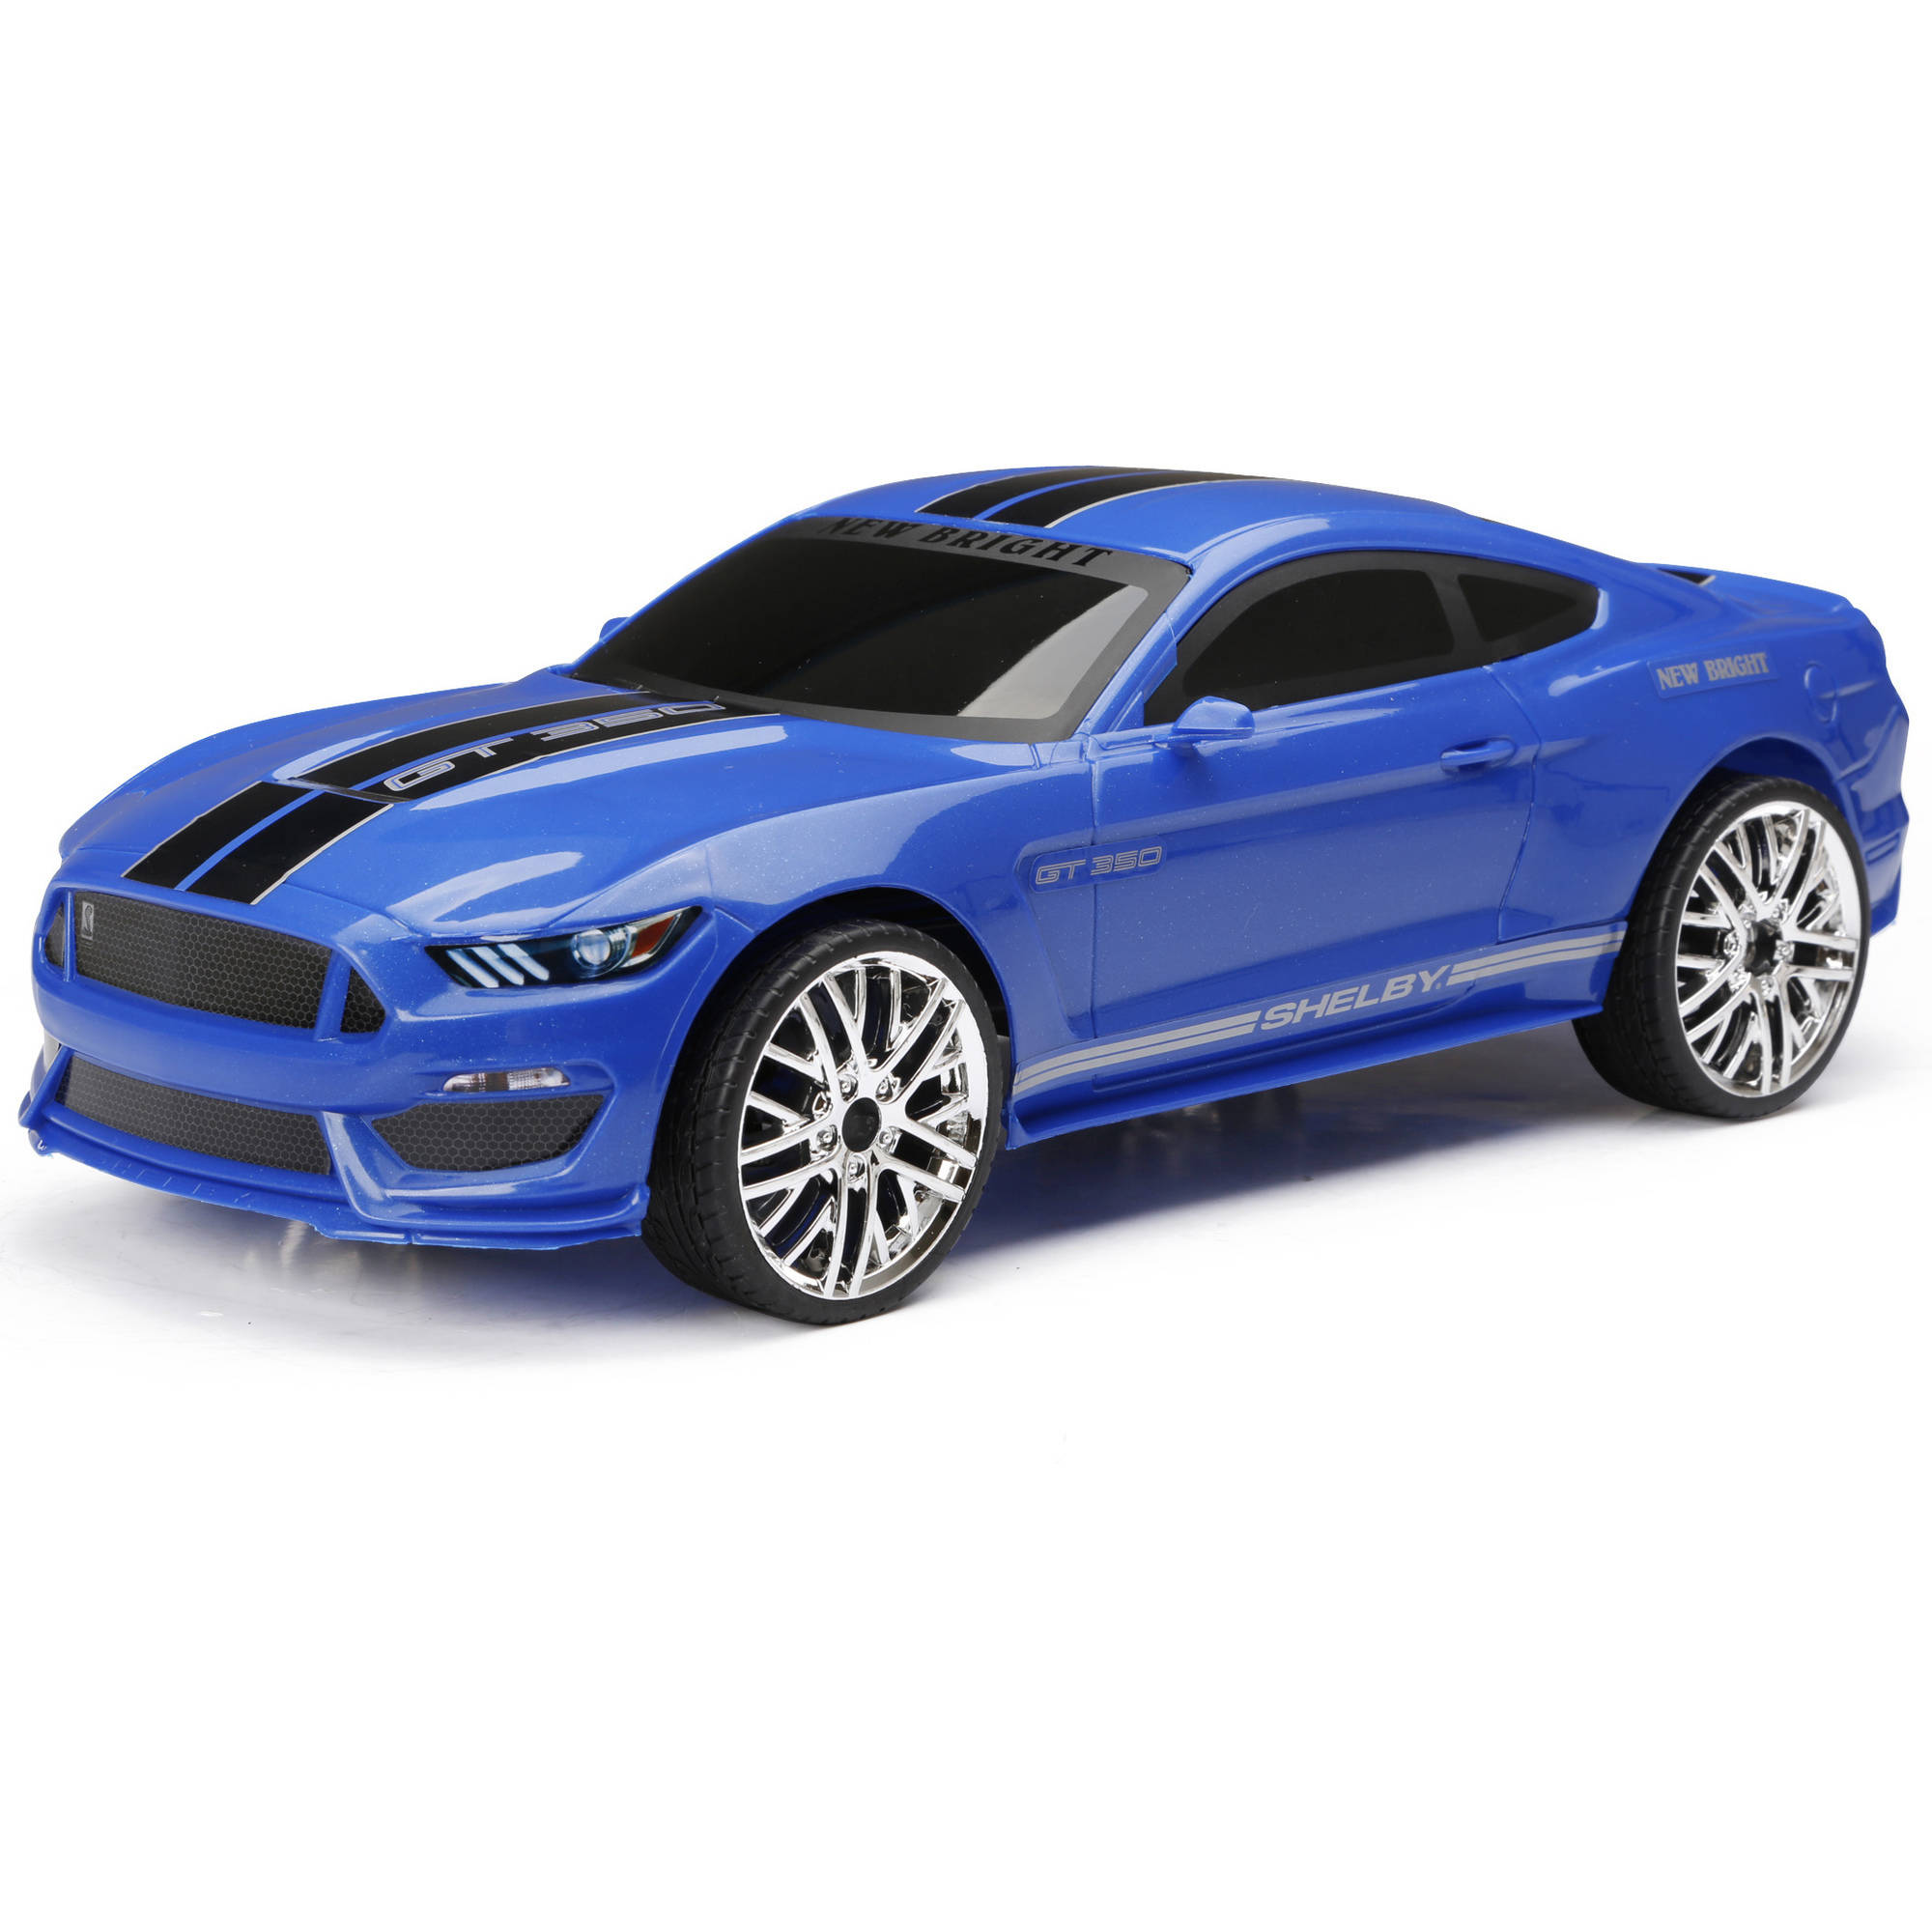 1:12 Chargers Full-Function Mustang R/C Car, Blue